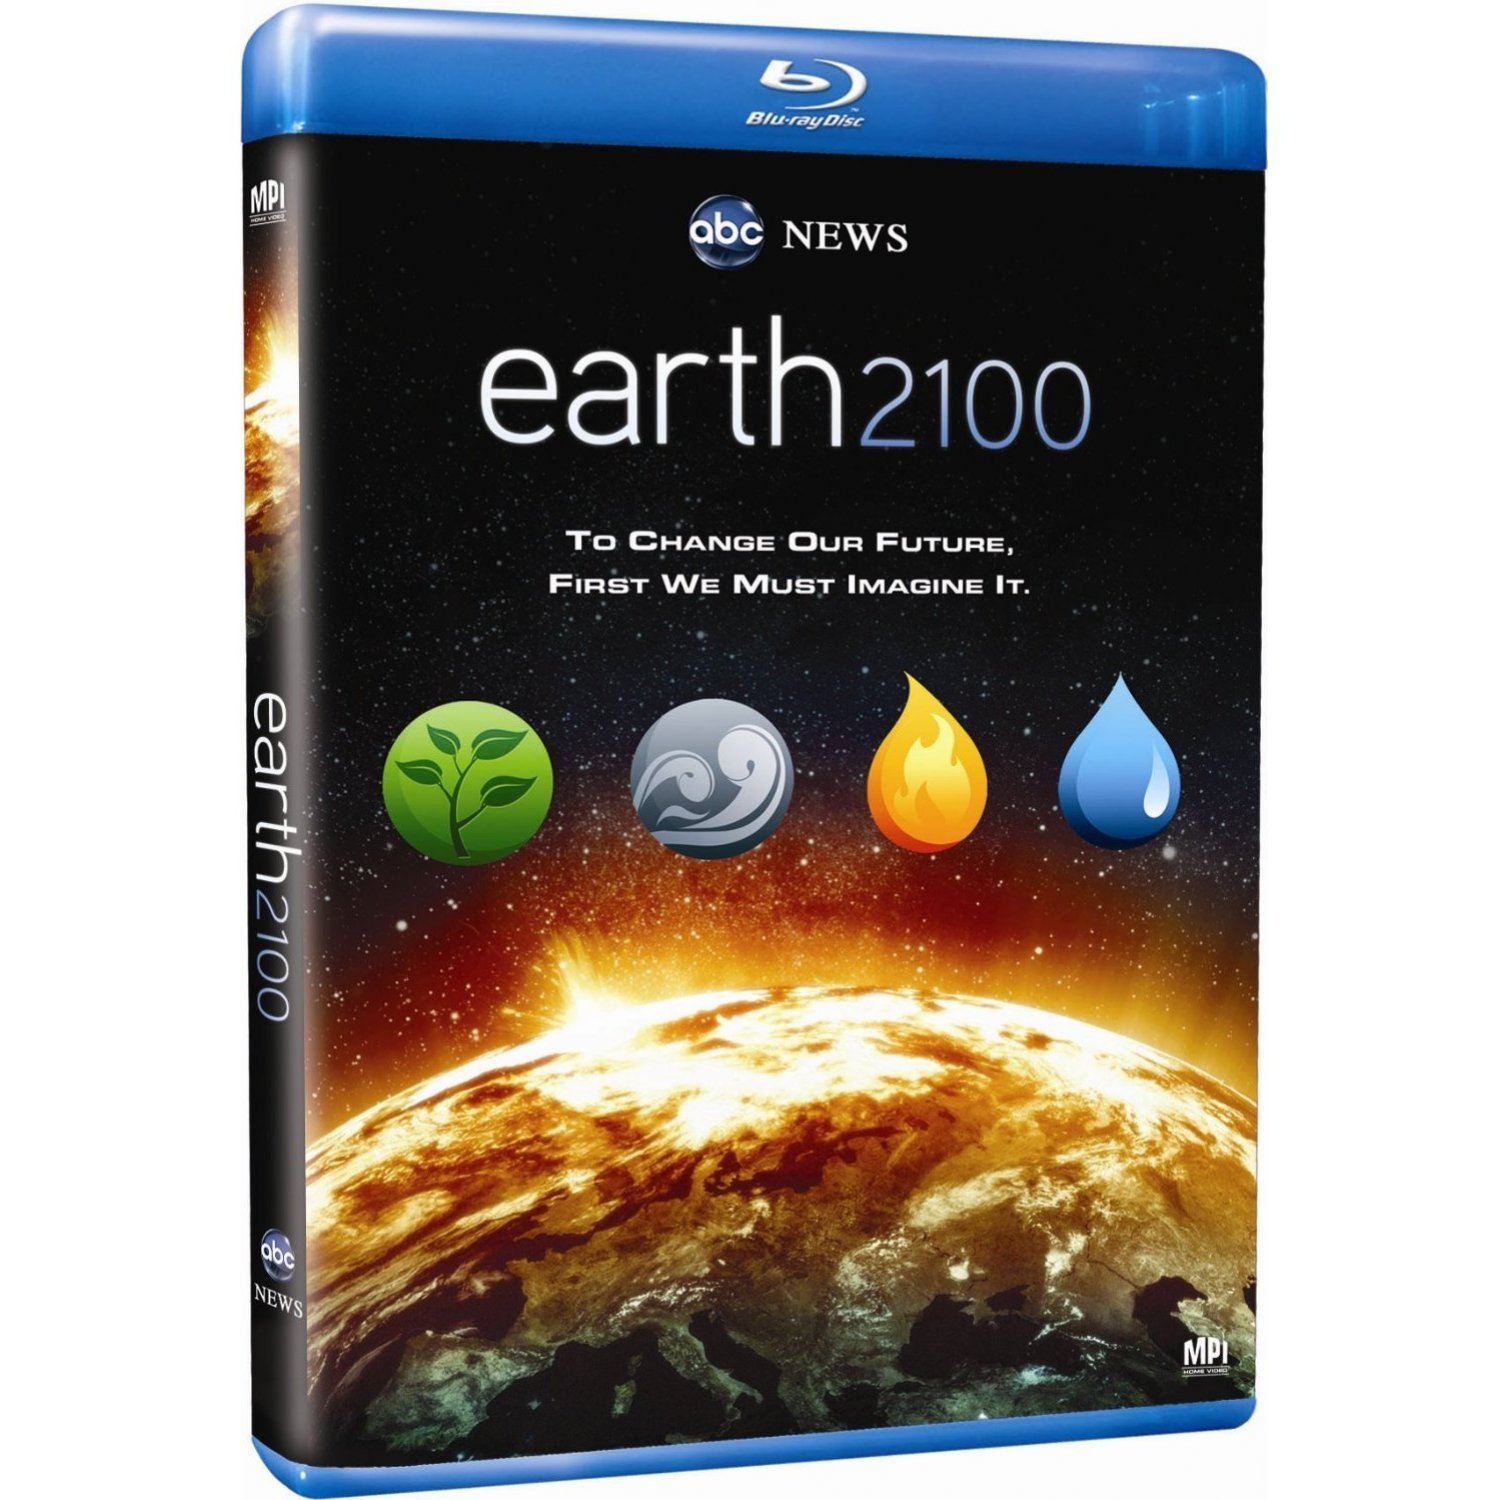 earth 2100 Return to the deal topcat earth 2100 (blu-ray) the fine print doesn't expire this item is sold through the groupon store topcat, operated by topcat.